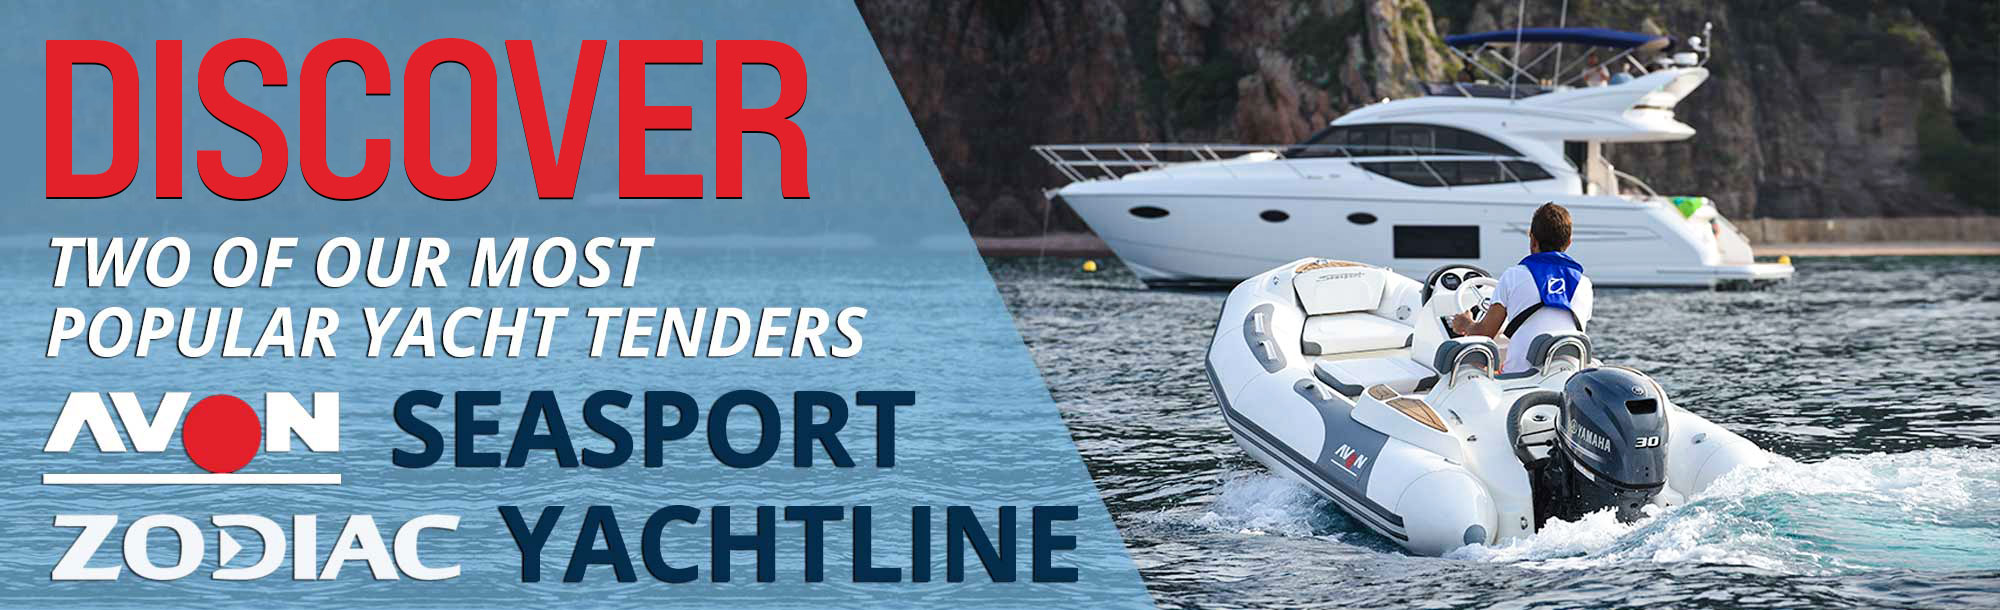 Avon Inflatable yacht tenders and luxury dinghies available for sale at the Boat Specialists